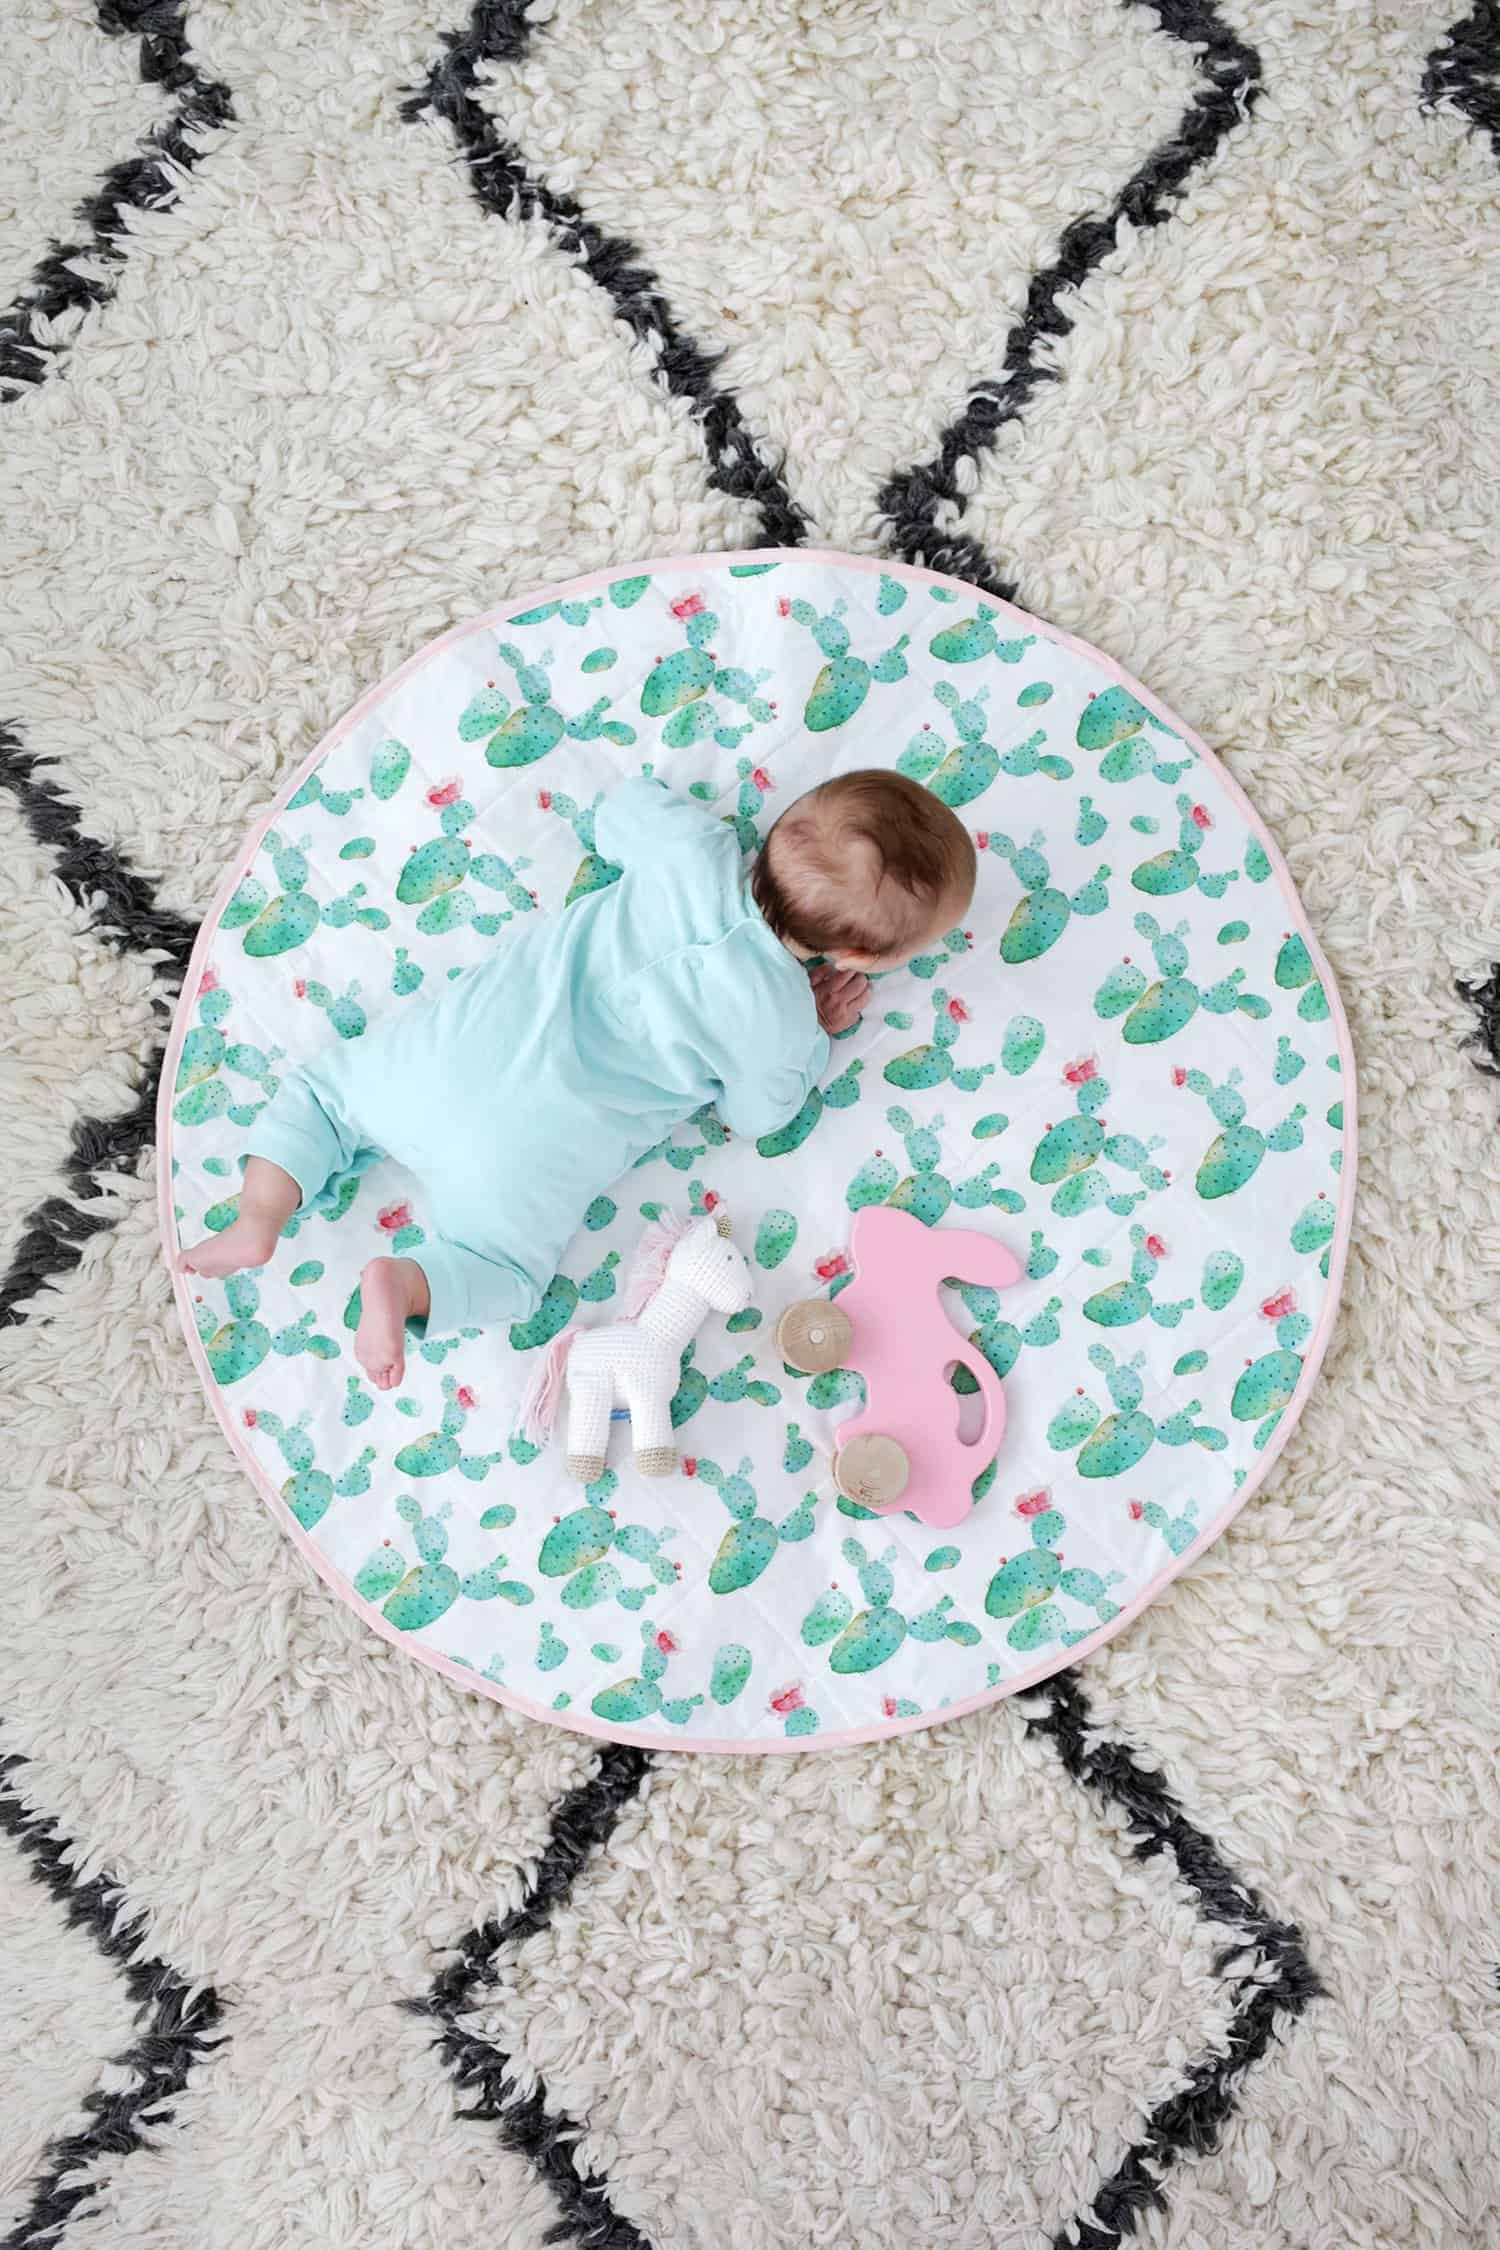 Circular quilted play mat